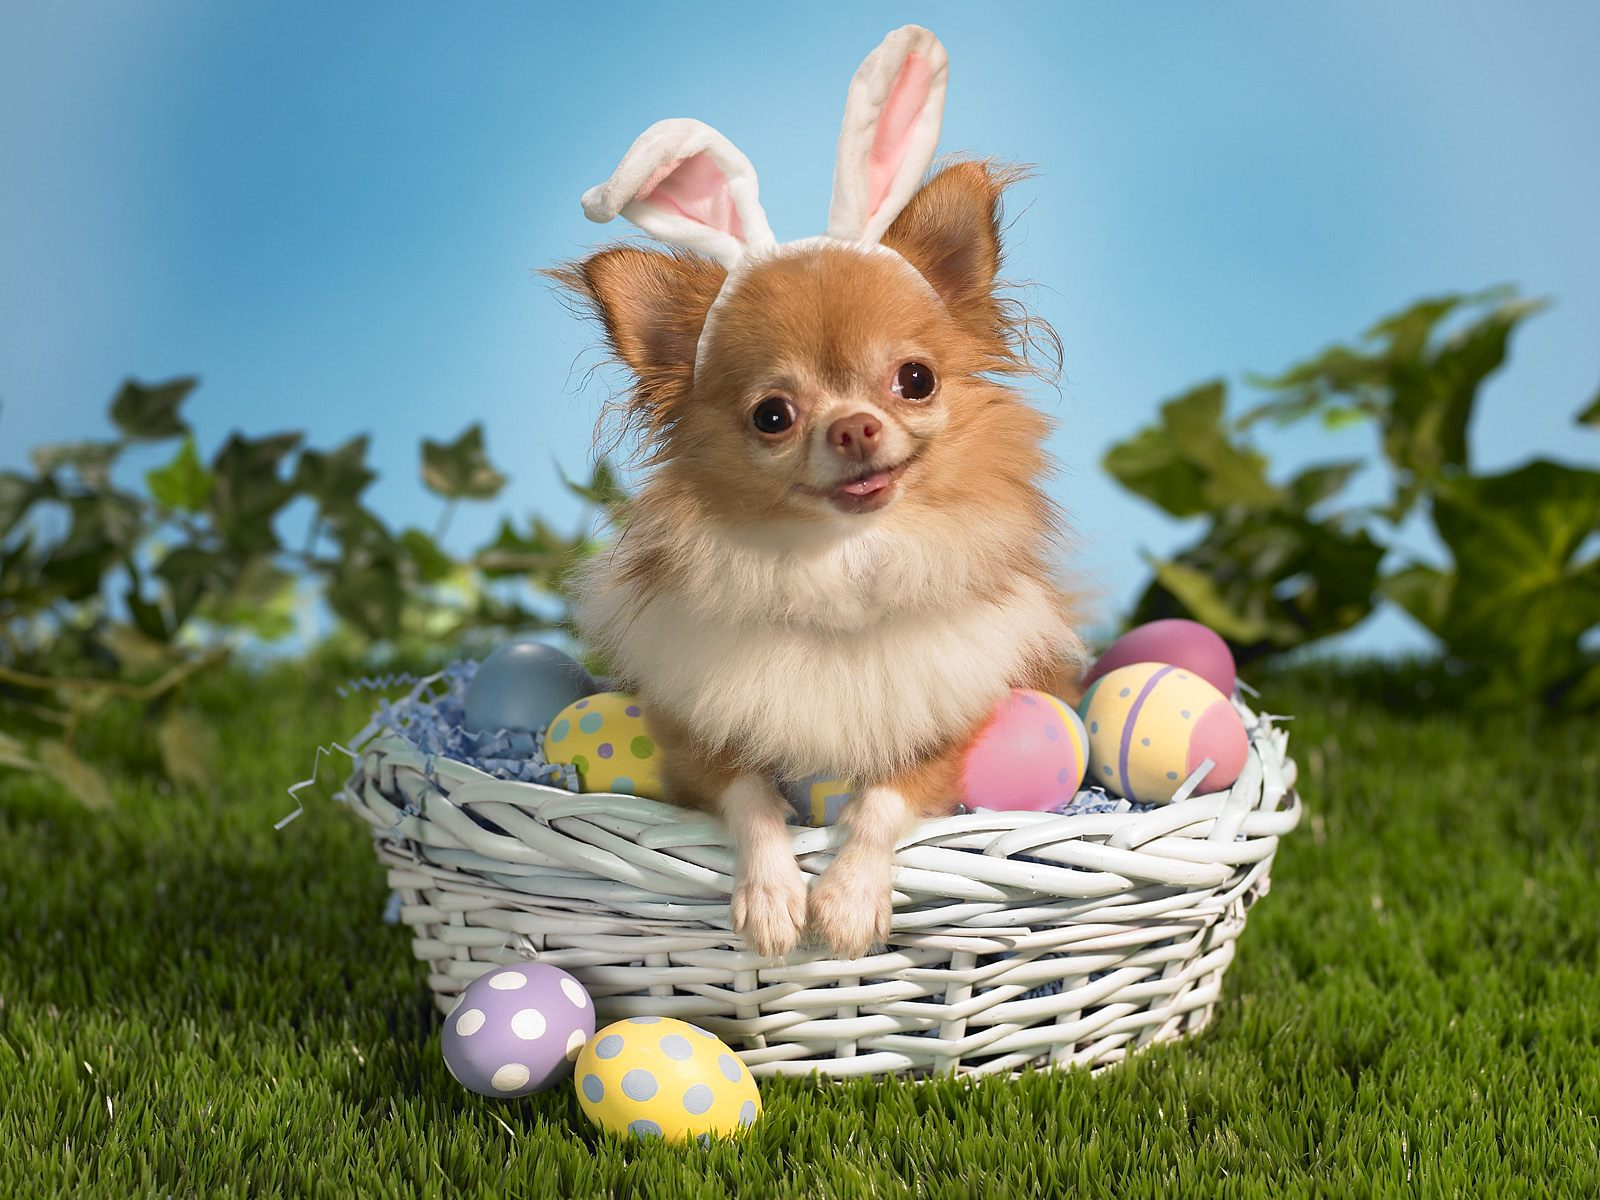 Happy Easter inotternewscom 1600x1200